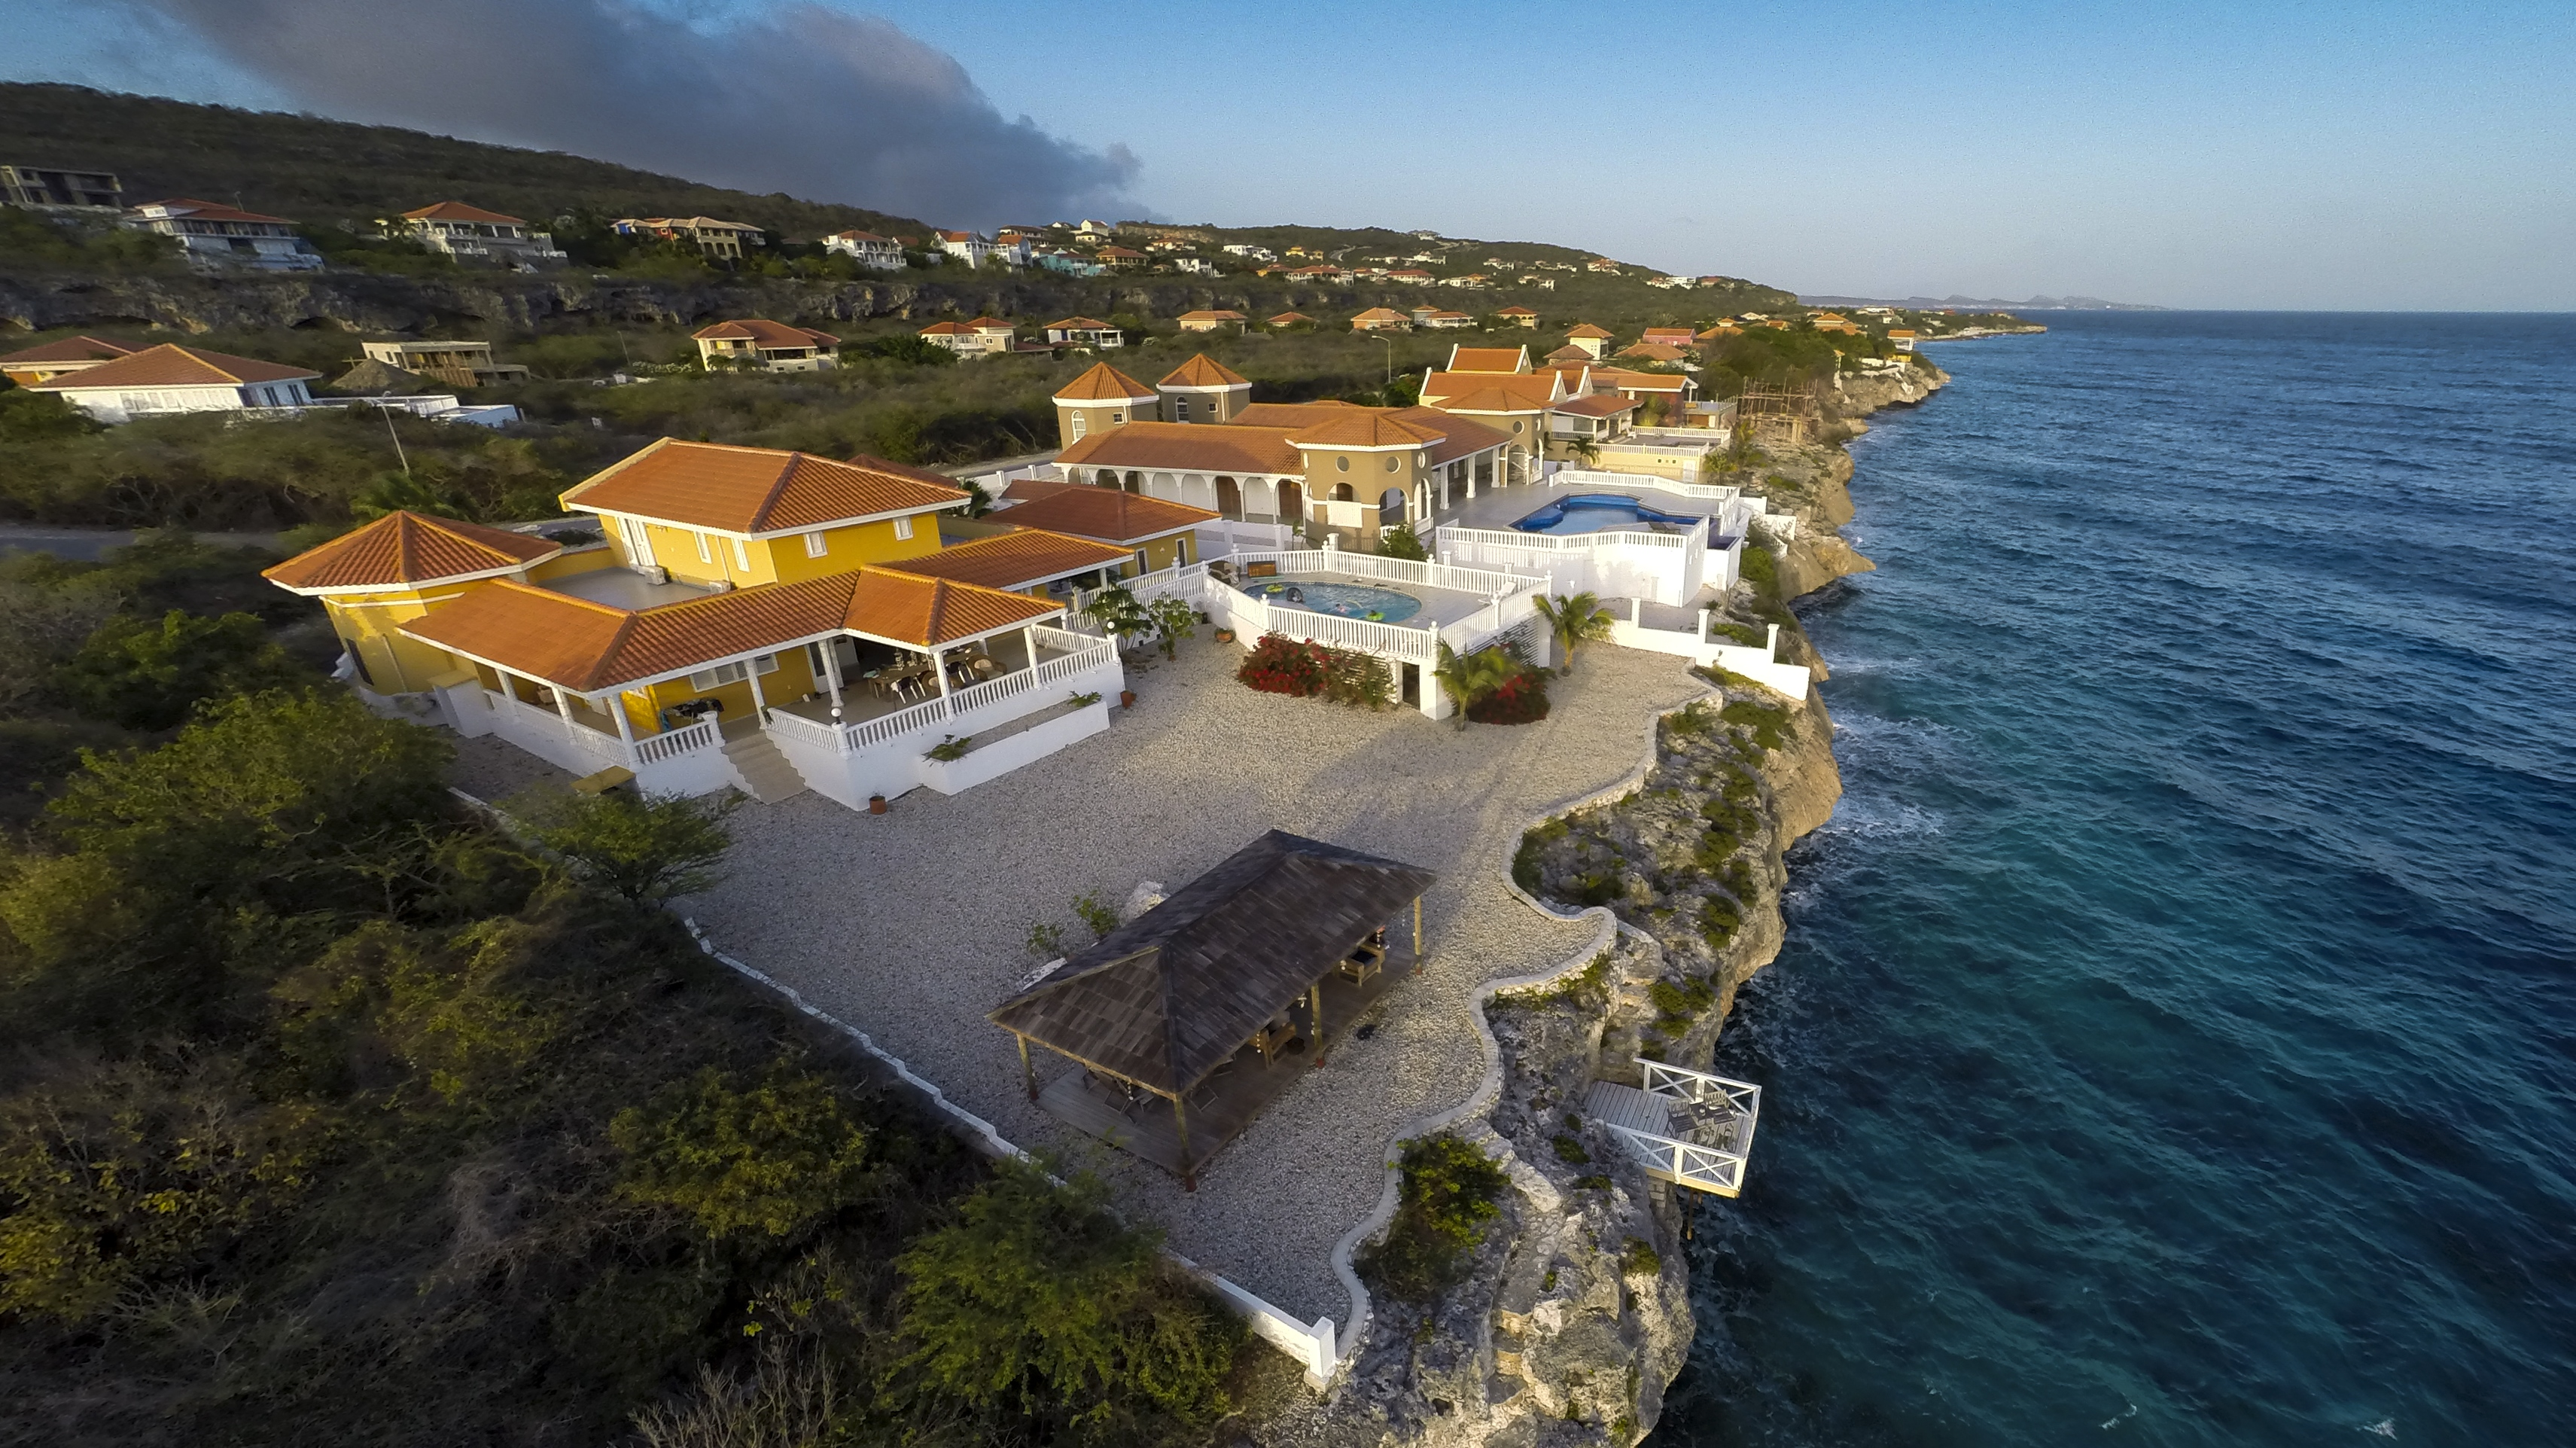 Curacao Vacation Rentals | Book Your Oceanfront Caribbean Island Villa